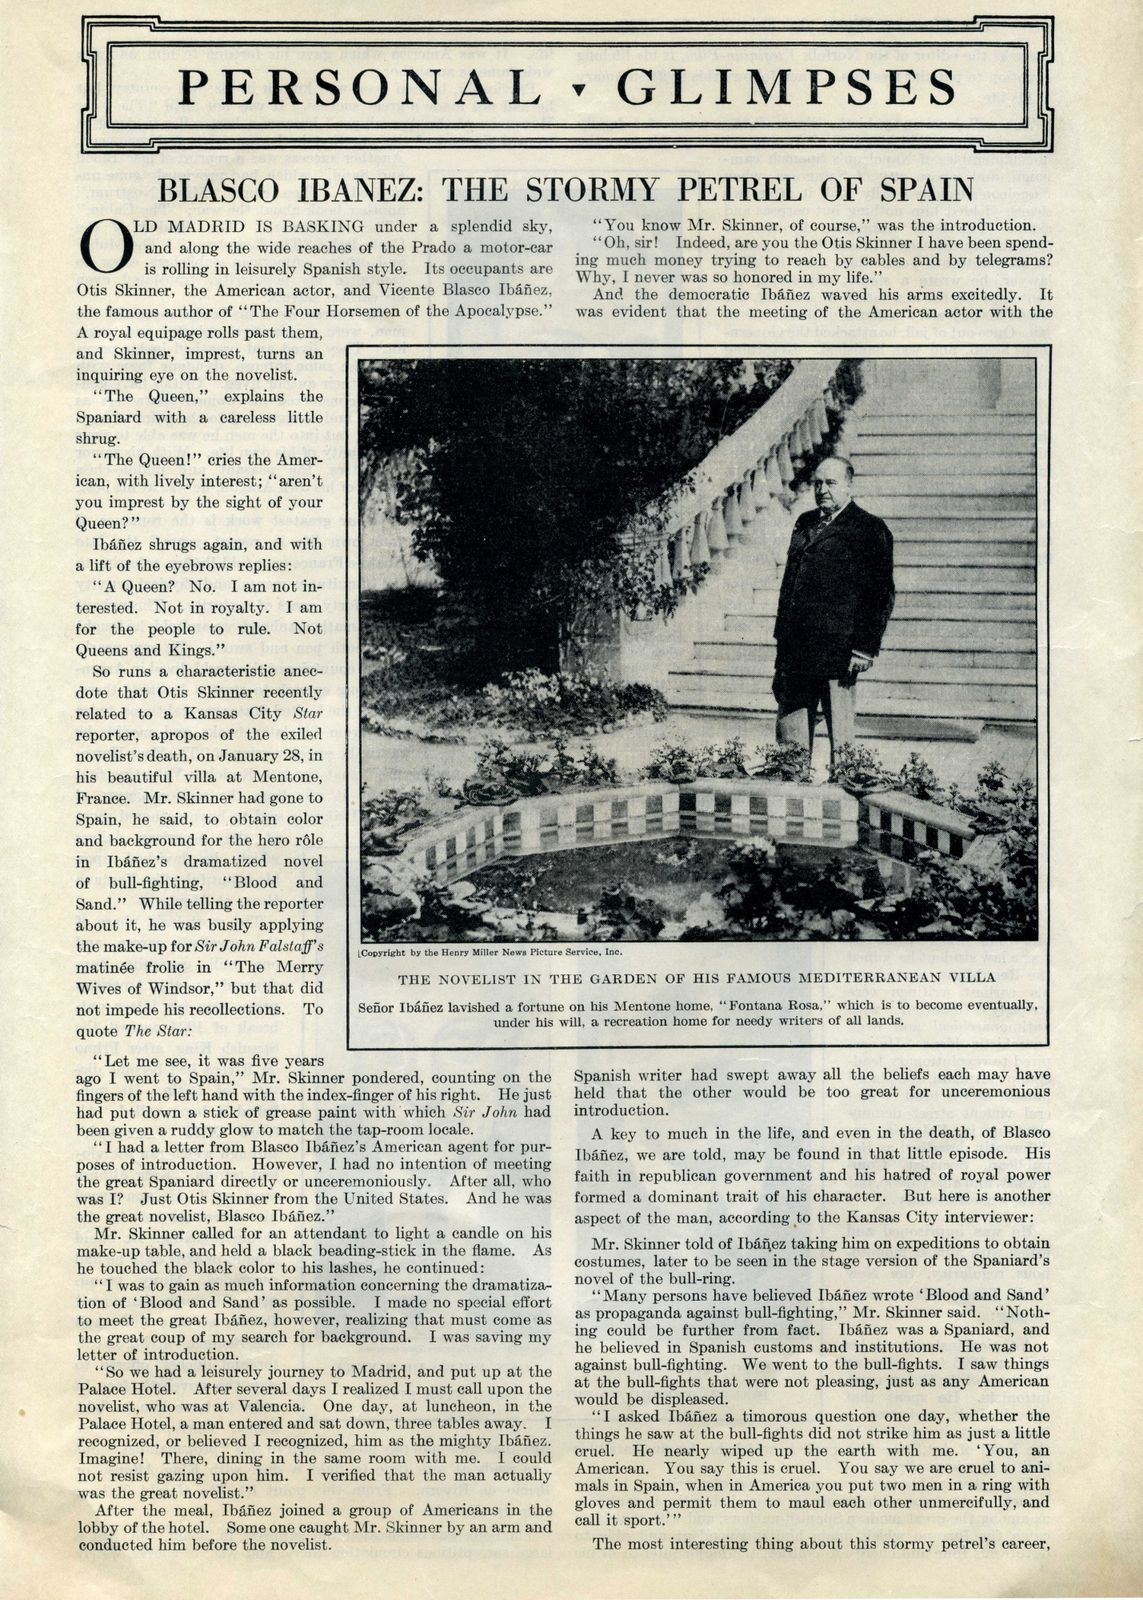 Vicente Blasco Ibañez : The Literary Digest - February, the 25th of 1928